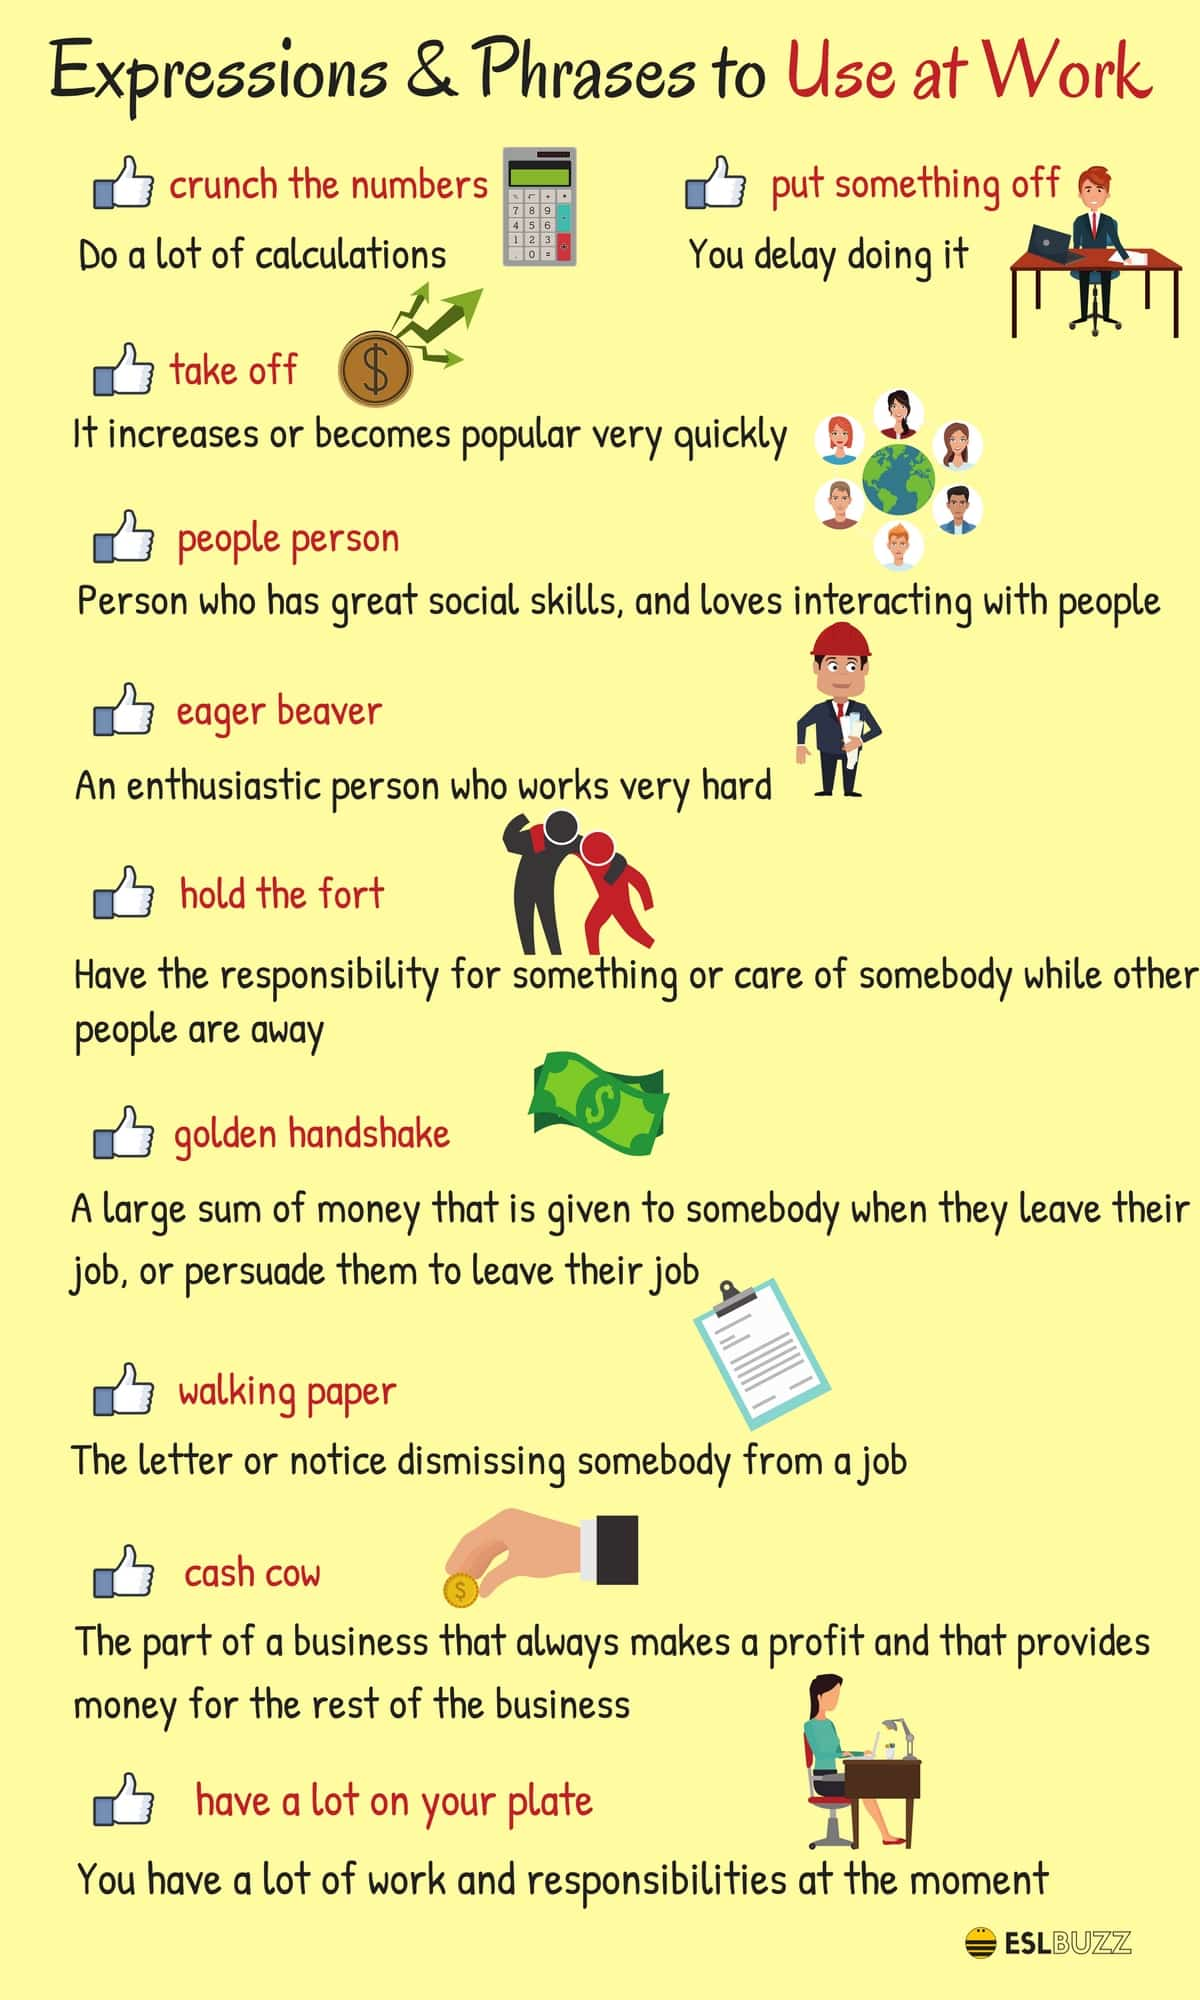 Expressionsabout Work and Employmen